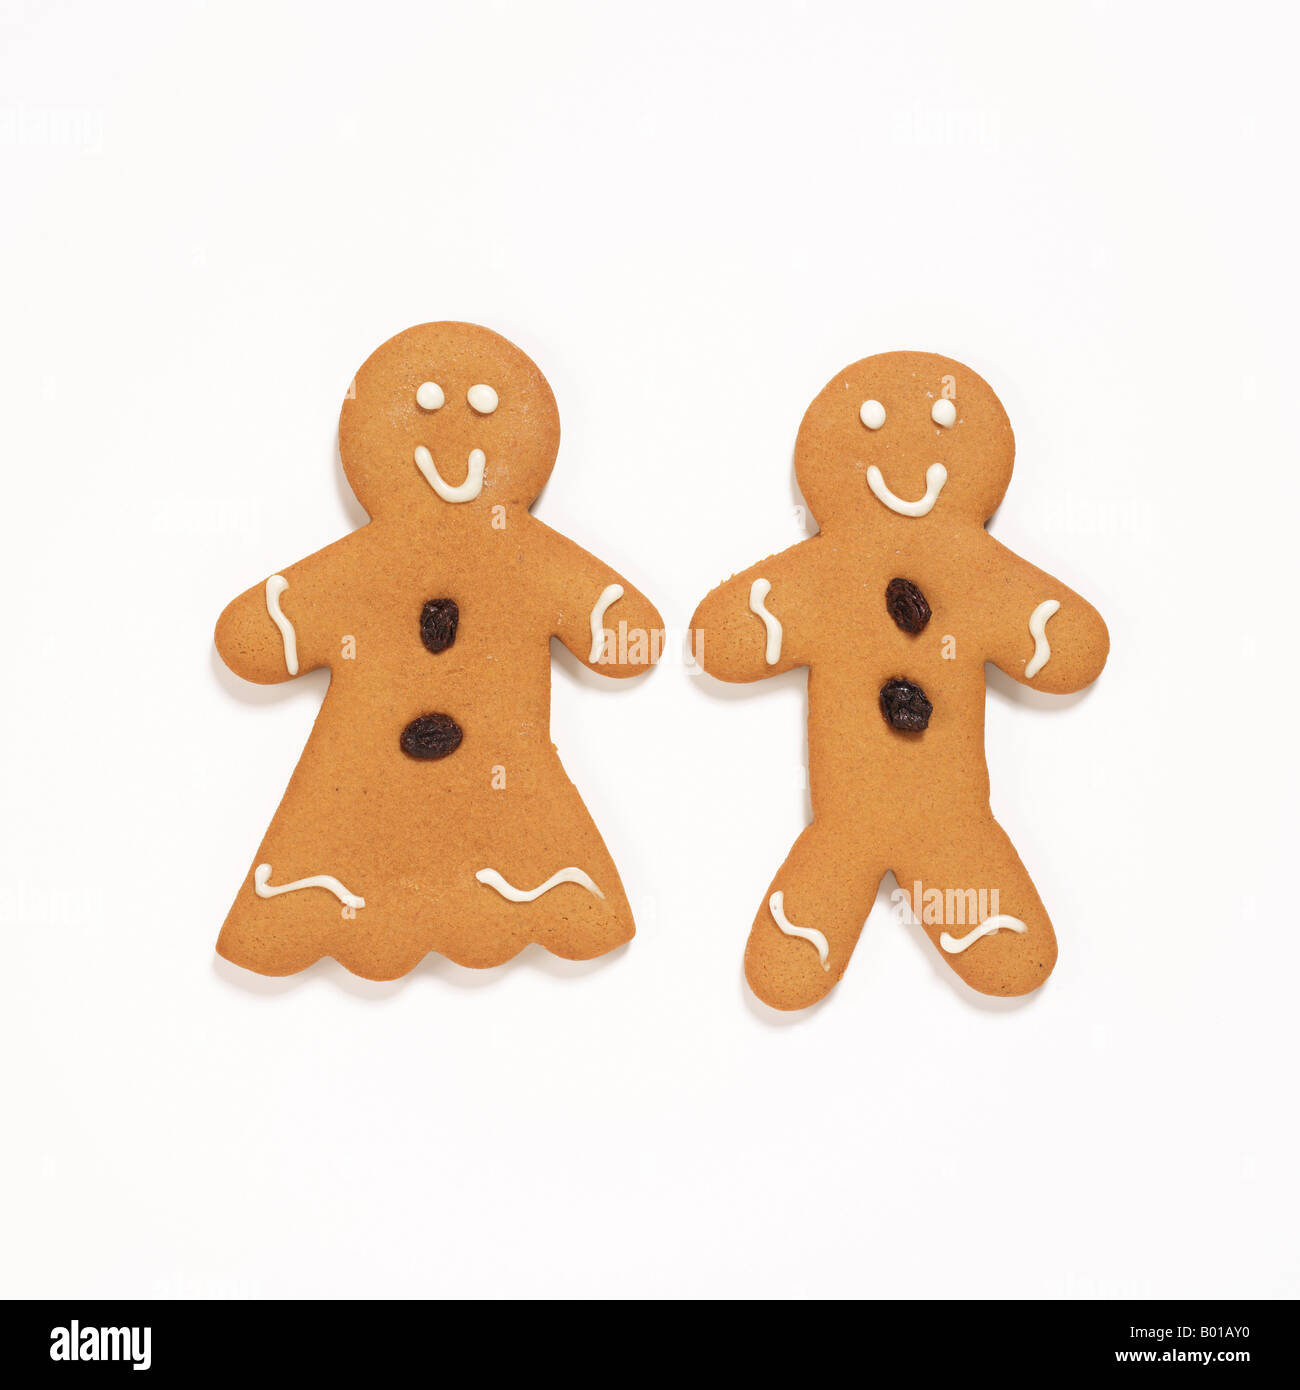 gingerbread cookies - Stock Image